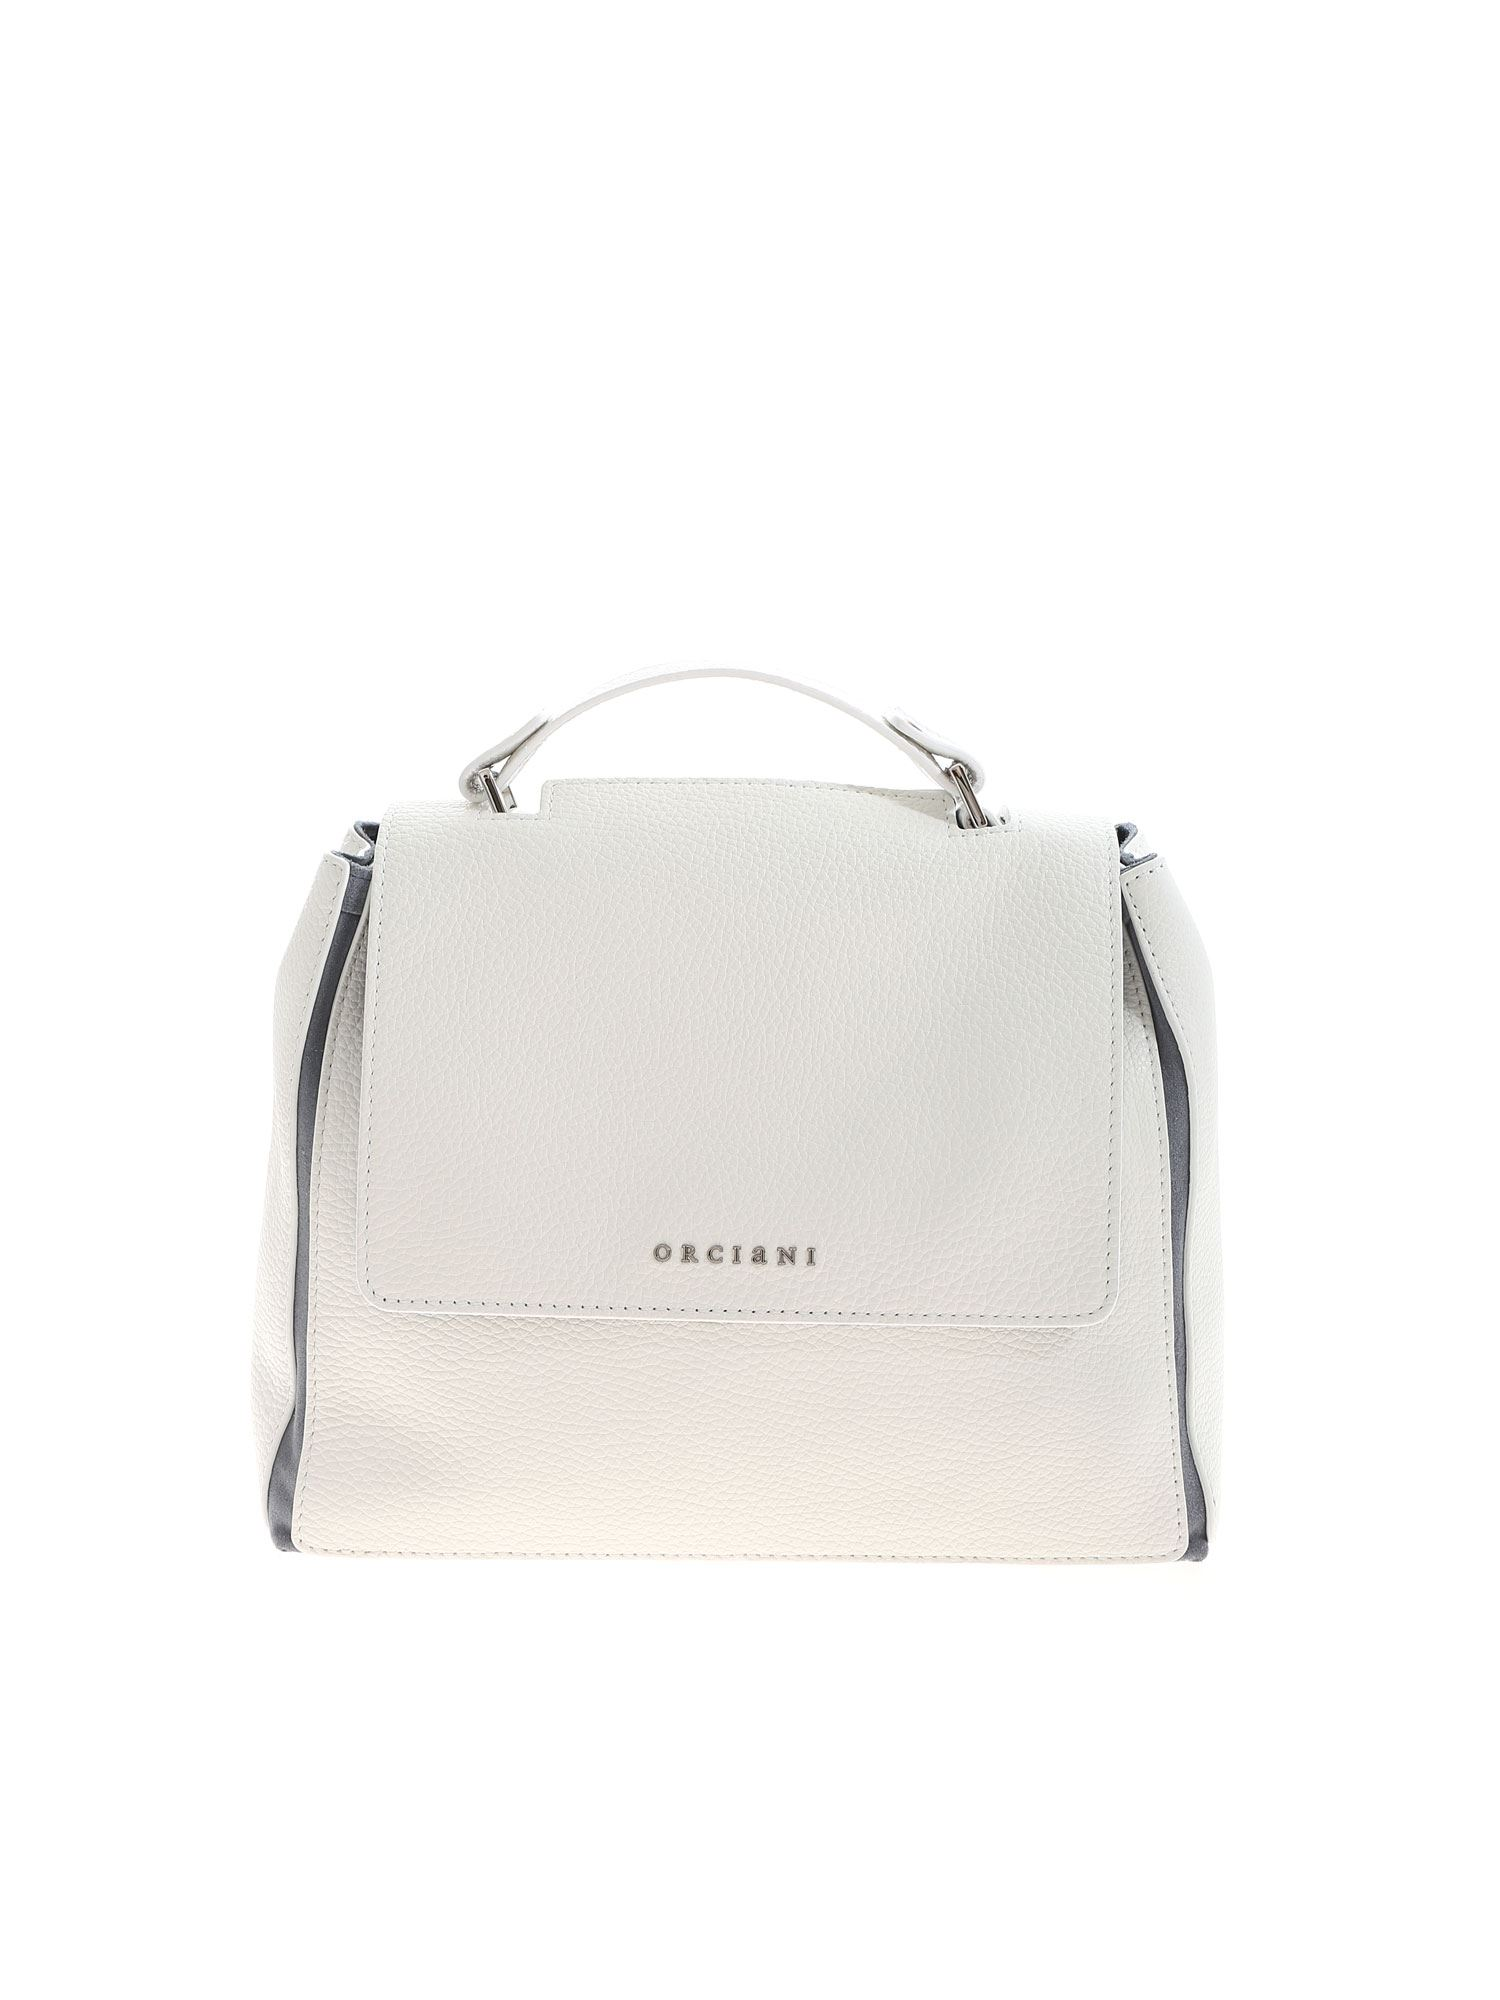 Orciani Leathers SVEVA SMALL BAG IN WHITE